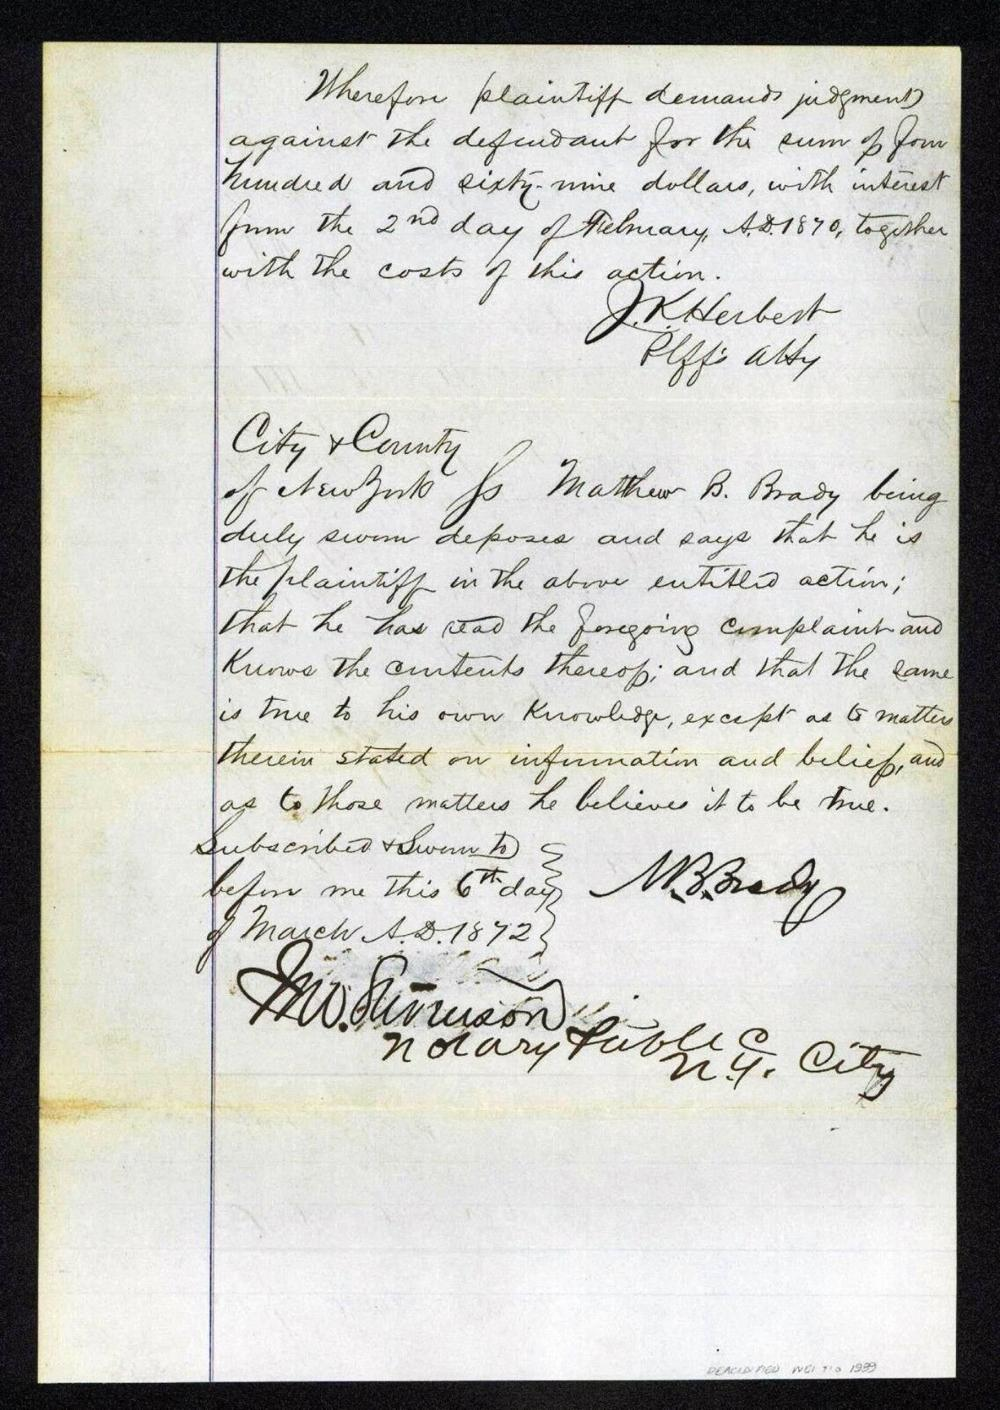 """Mathew Brady Sues the Notorious Jay Gould for his Failure to Pay for """"Certain Pictures of Defendant"""""""